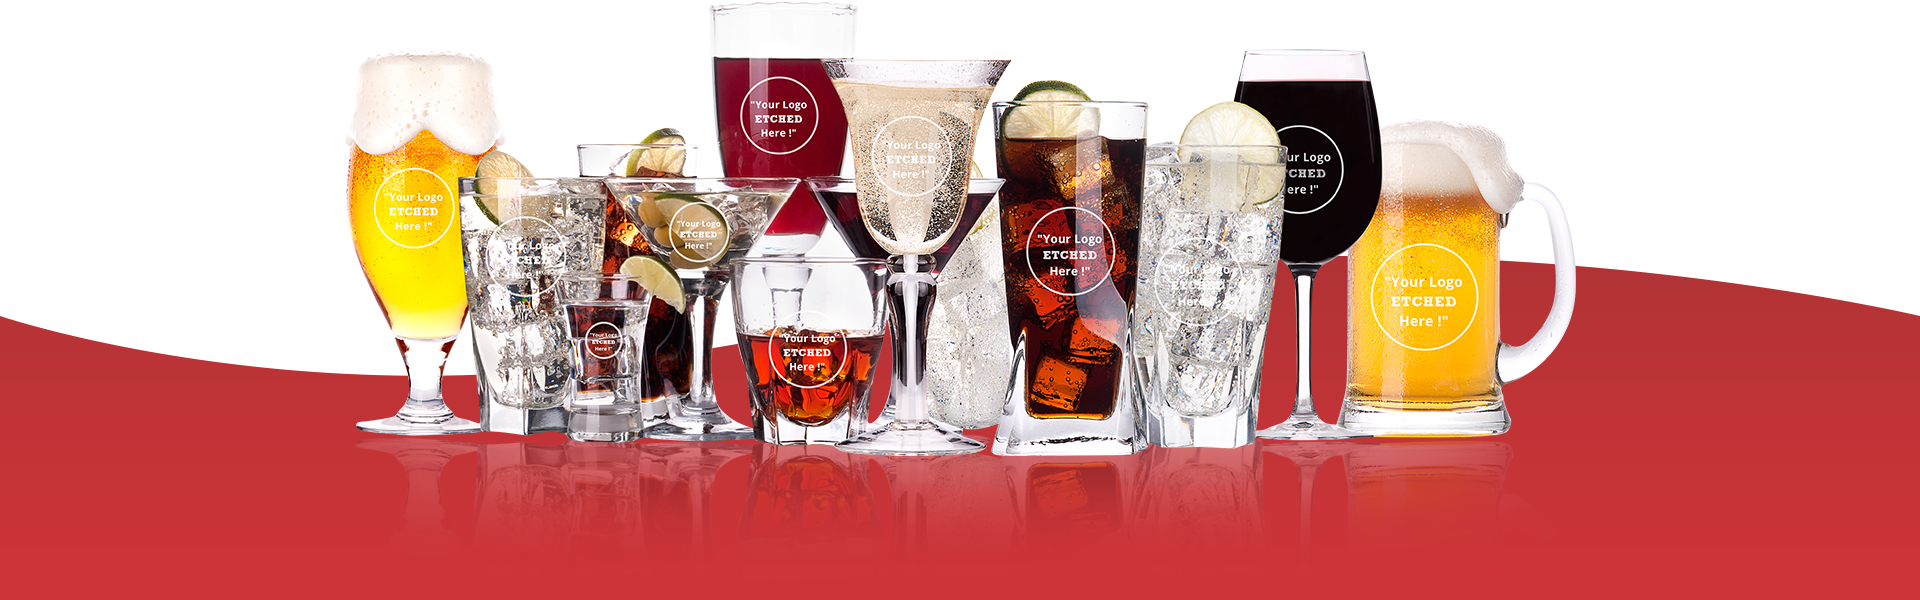 Personalised and engraved glassware from The Glassware Company